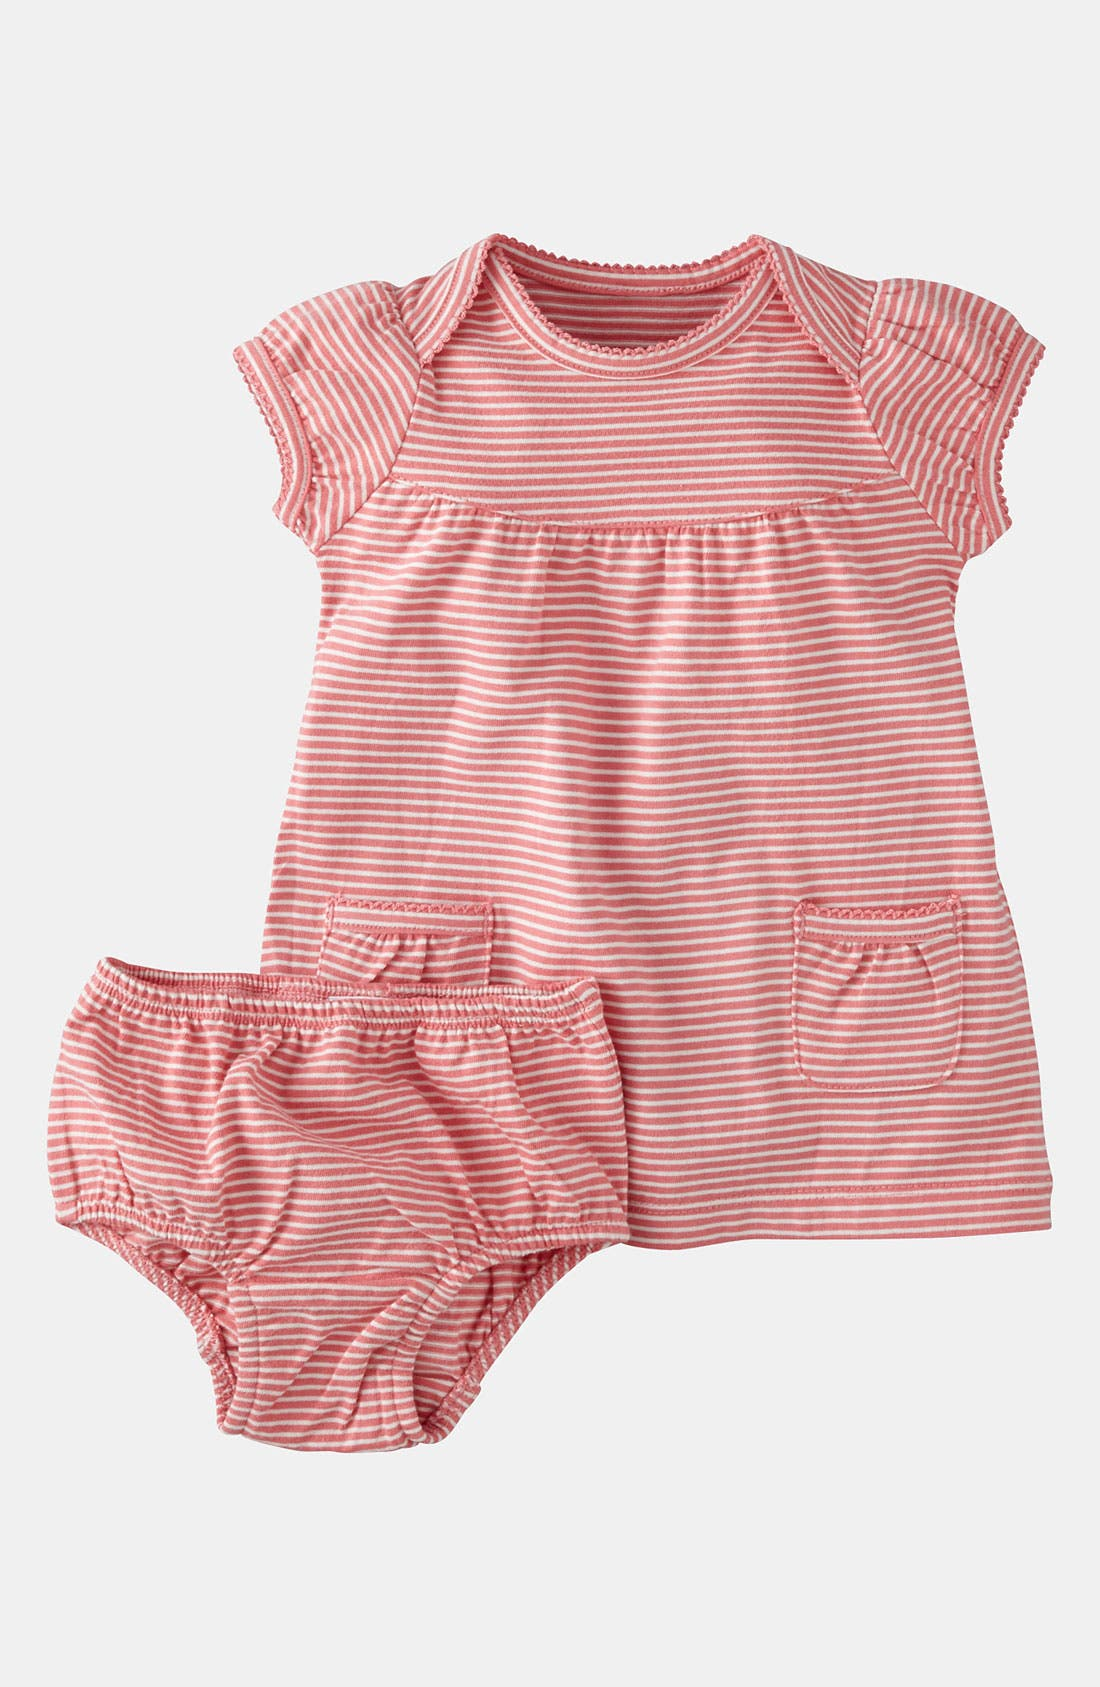 Main Image - Mini Boden 'Simple' Jersey Dress & Bloomers (Infant)